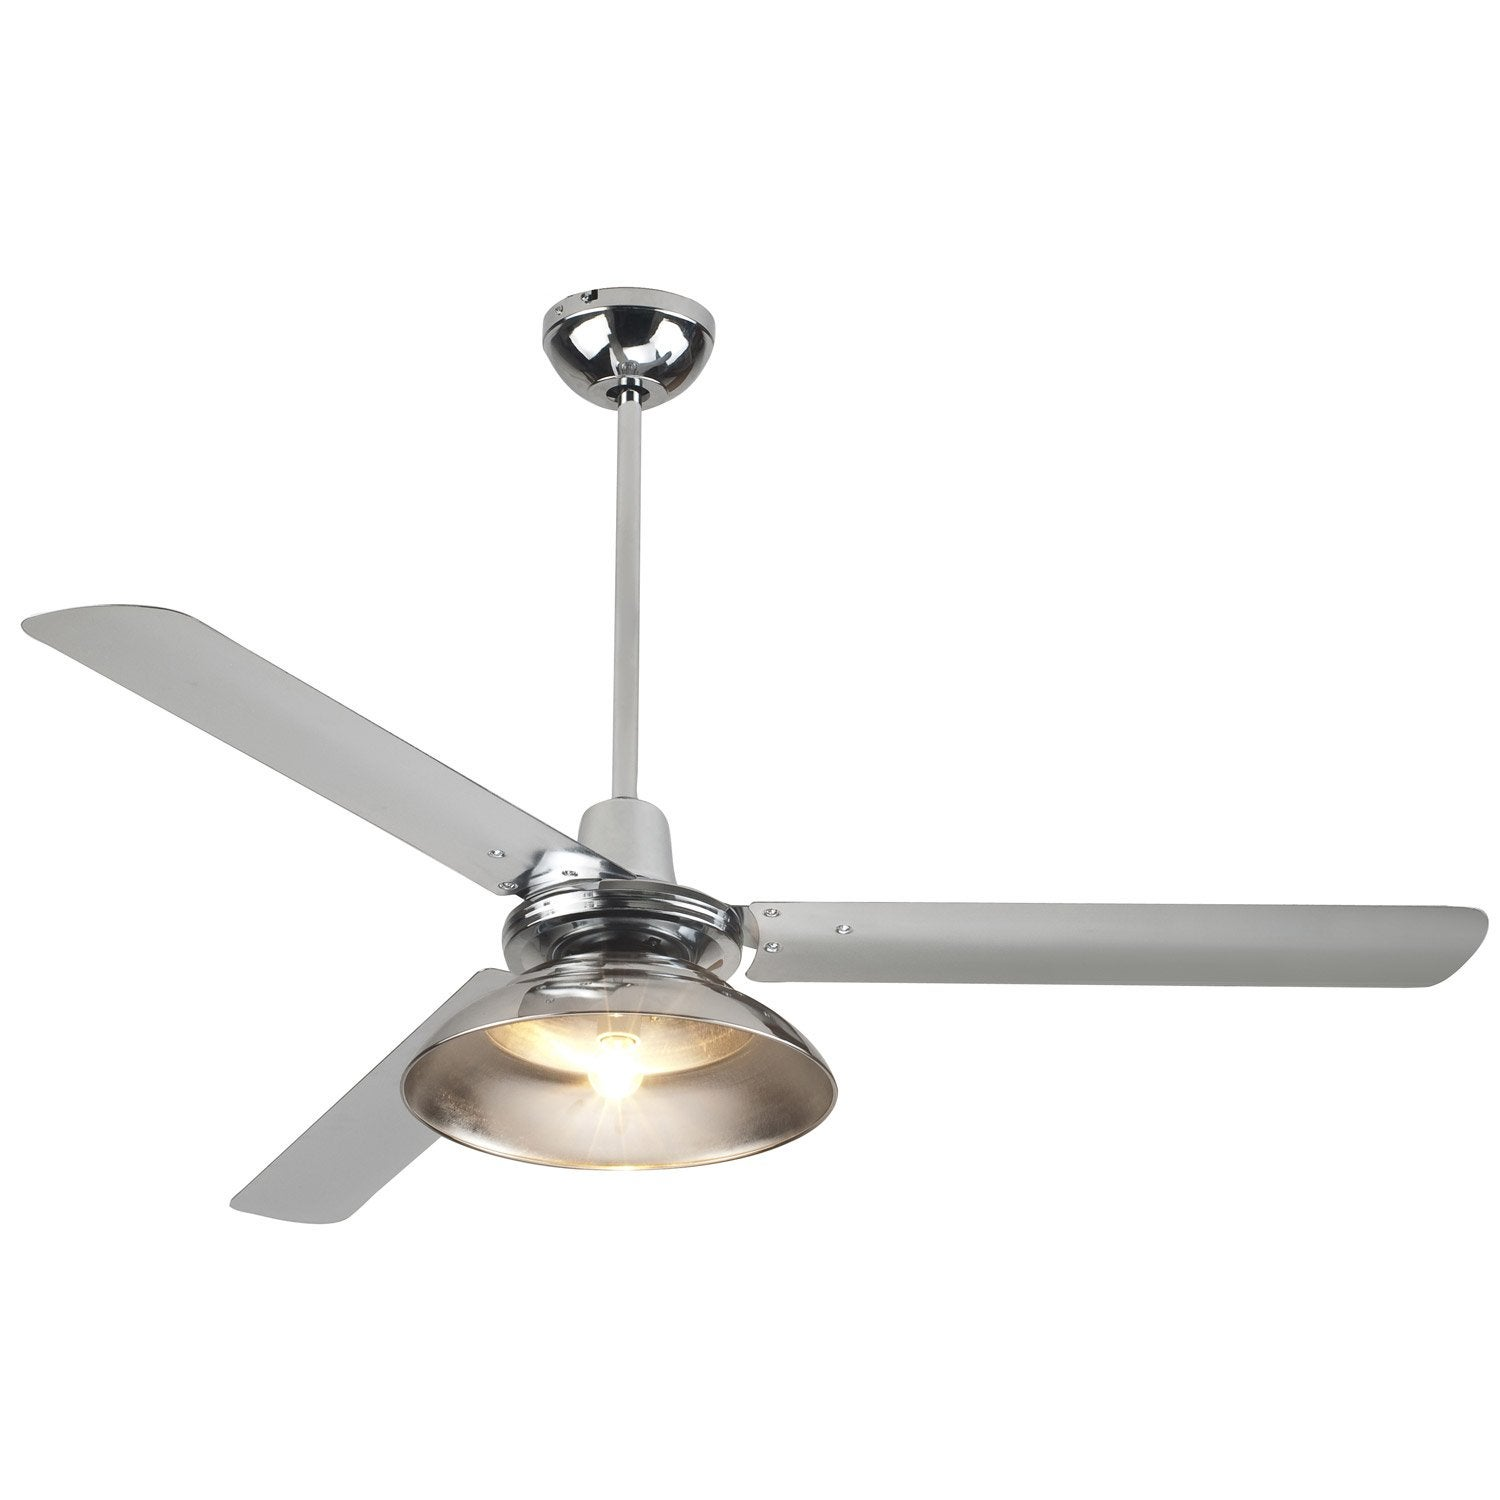 Ventilateur de plafond tasmania inspire chrome 60 w leroy merlin - Collection inspire leroy merlin ...